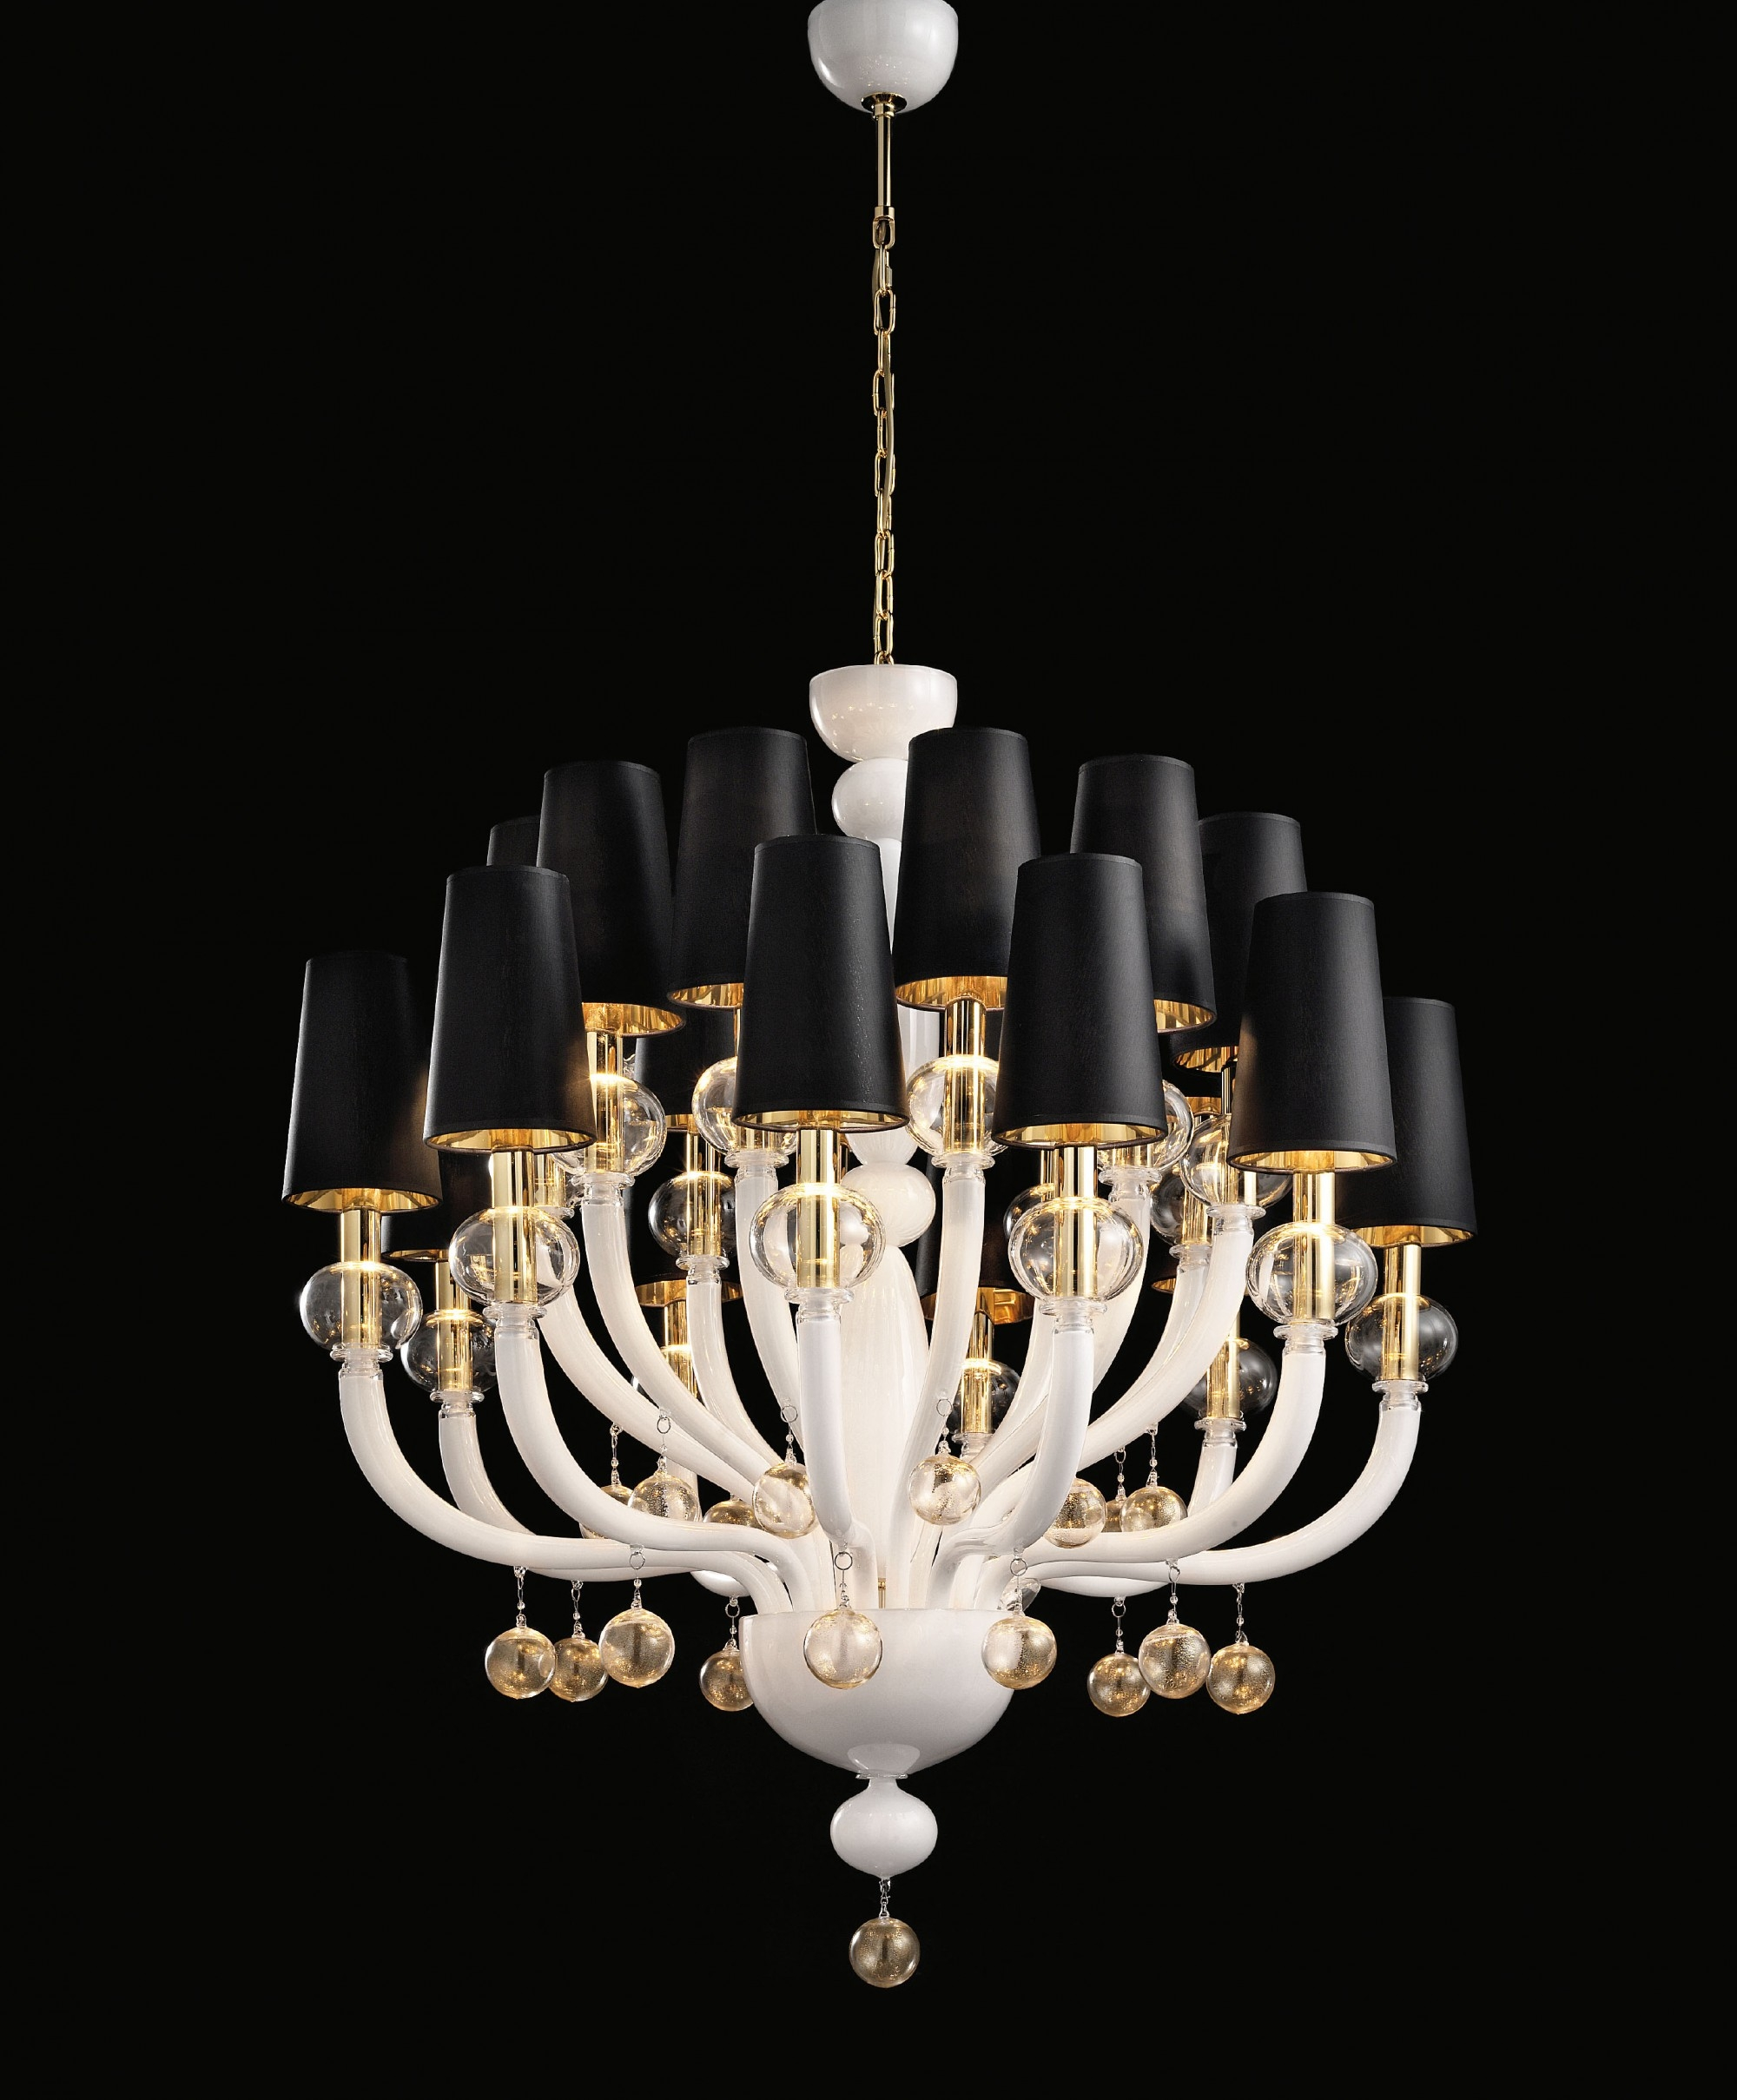 Modern Glass Chandelier Lighting Furniture Ideas Within Modern Glass Chandeliers (Image 9 of 15)